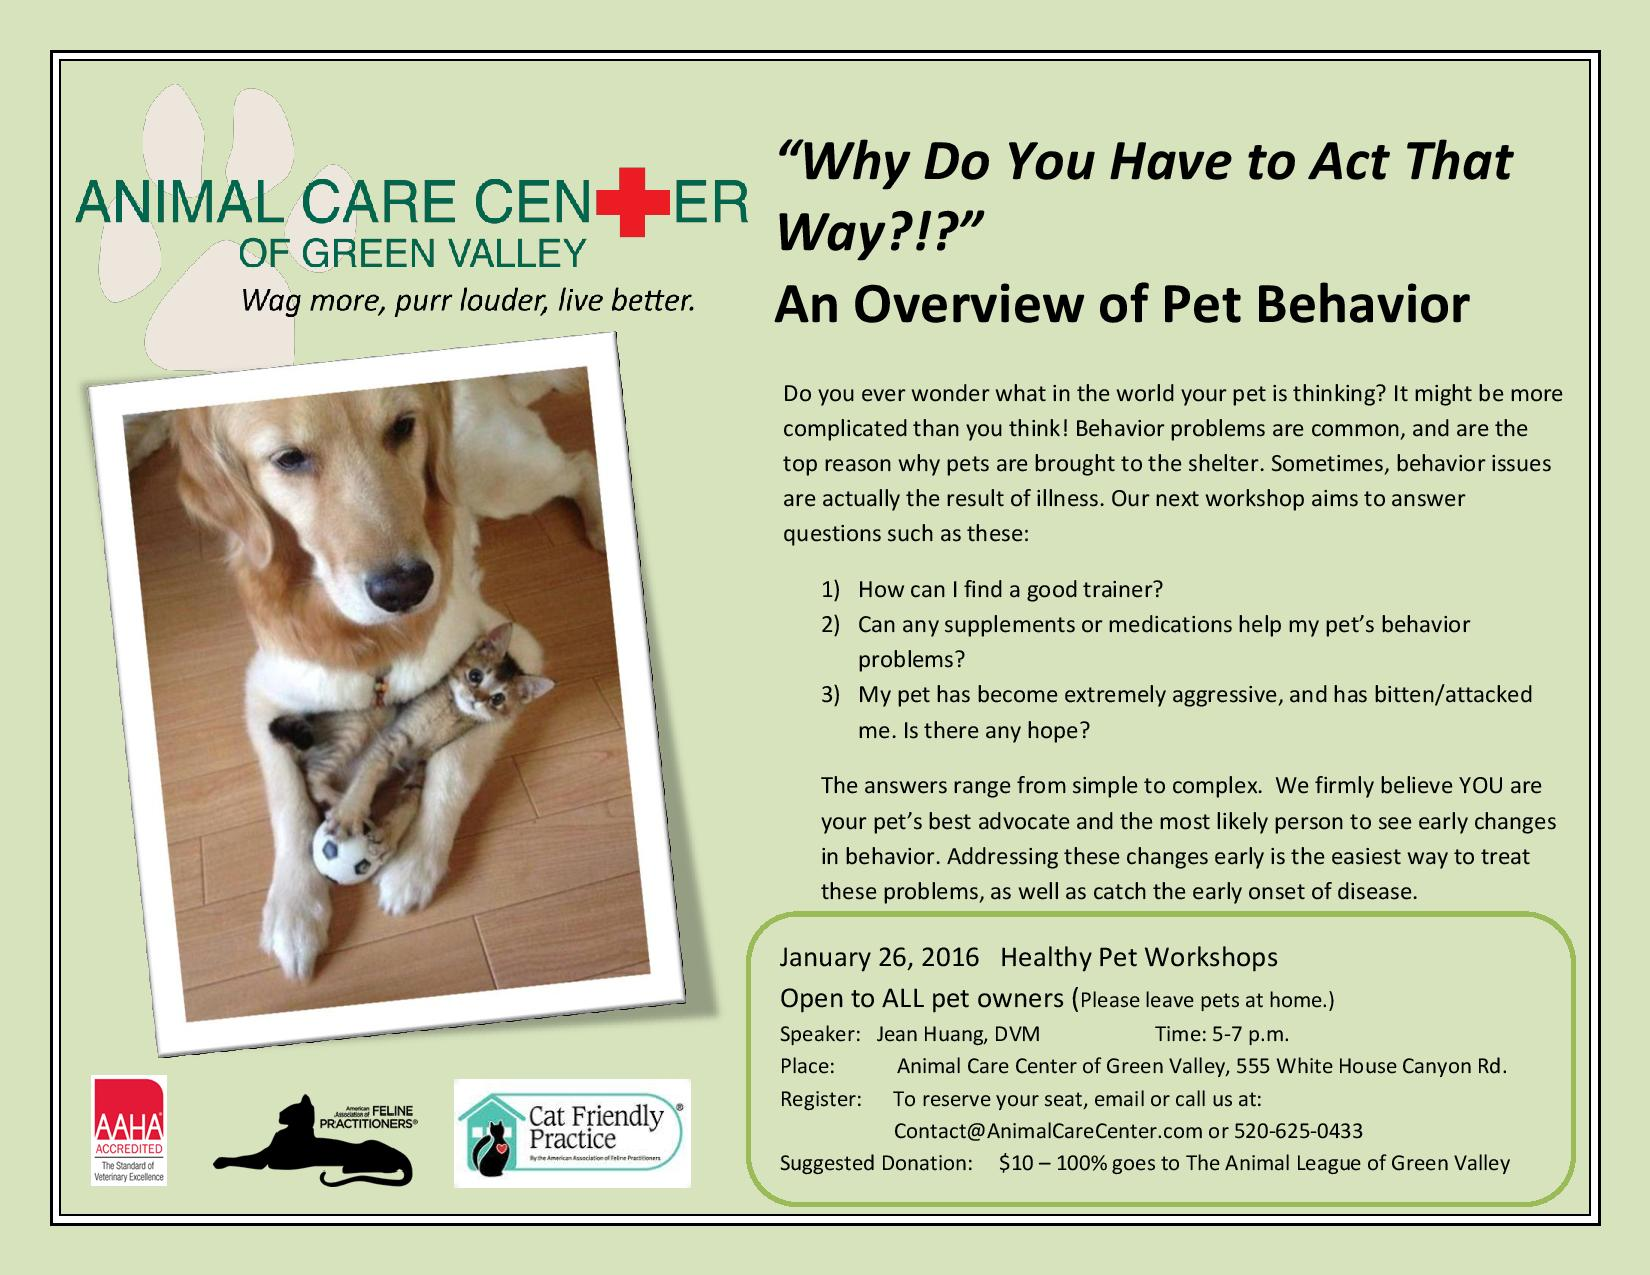 Dog house of green valley - 1 16 Behavior Full Page With Color Background Jpg